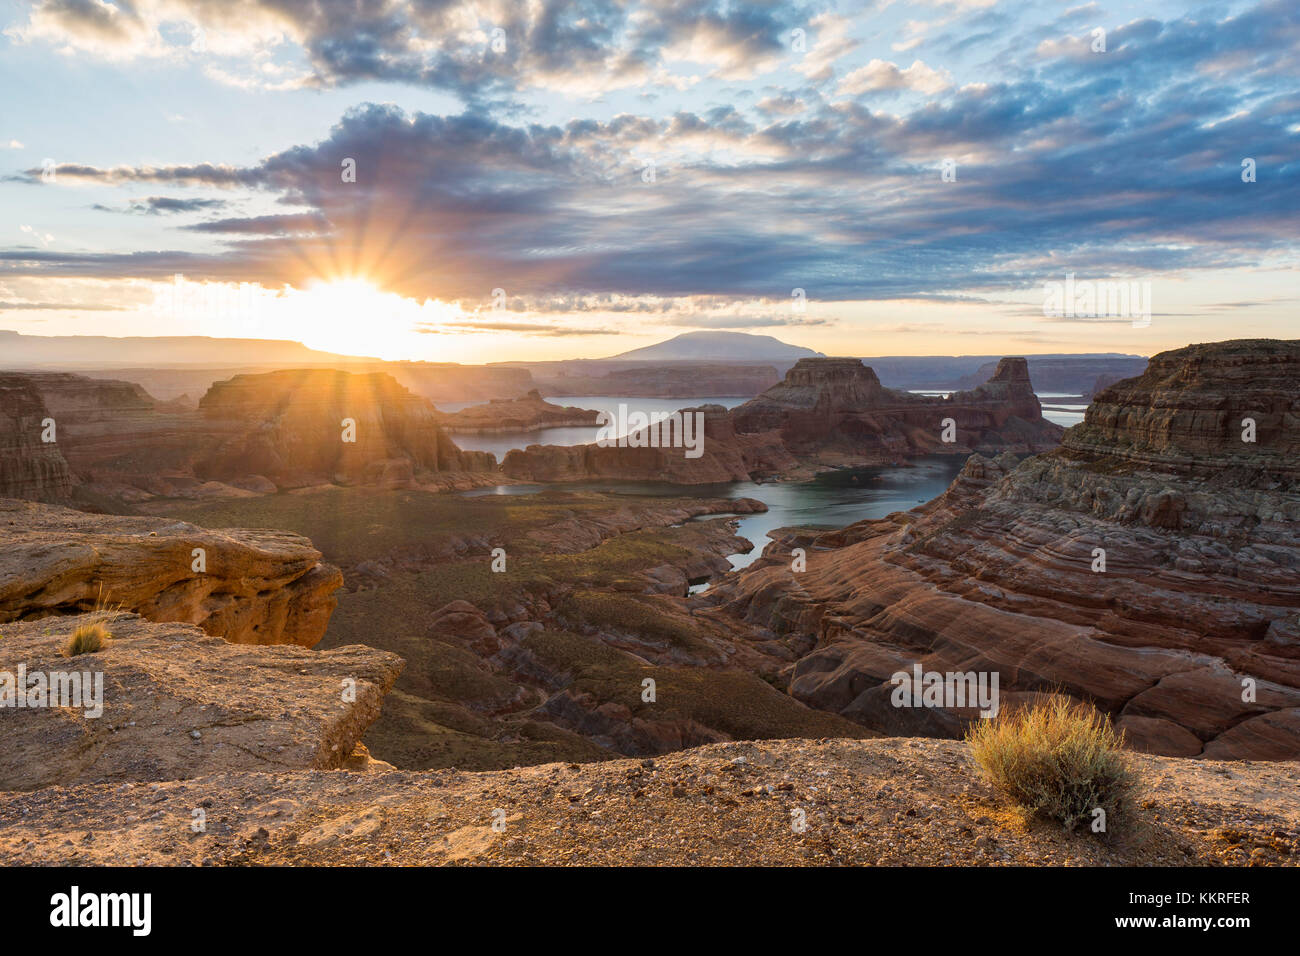 Sunrise al punto alstrom, Lake Powell, Glen Canyon National Recreation Area, pagina, tra Arizona e Utah, Stati Uniti Immagini Stock